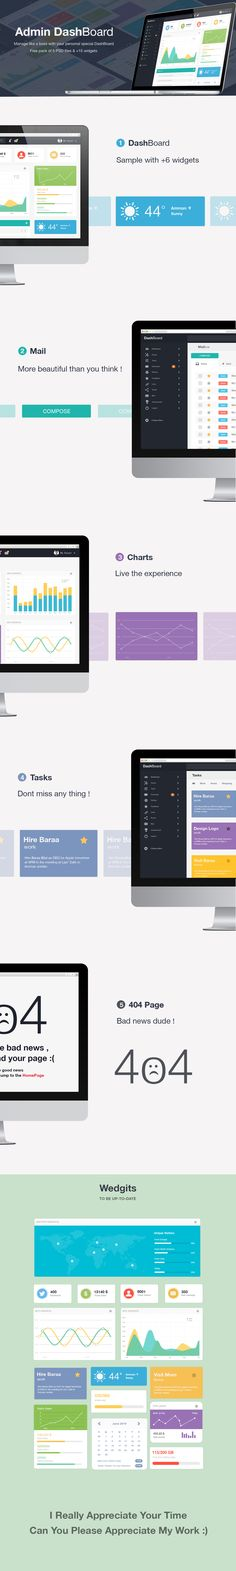 This freebie is a Free Admin Dashboard UI Kit PSD that you can use for site administrator inteface. This is Admin DashBoard Free UI PSD created by Baraa Bilal. Dashboard Interface, Web Dashboard, Analytics Dashboard, Dashboard Template, Dashboard Design, User Interface Design, Mobile Web Design, App Design, Corporate Design